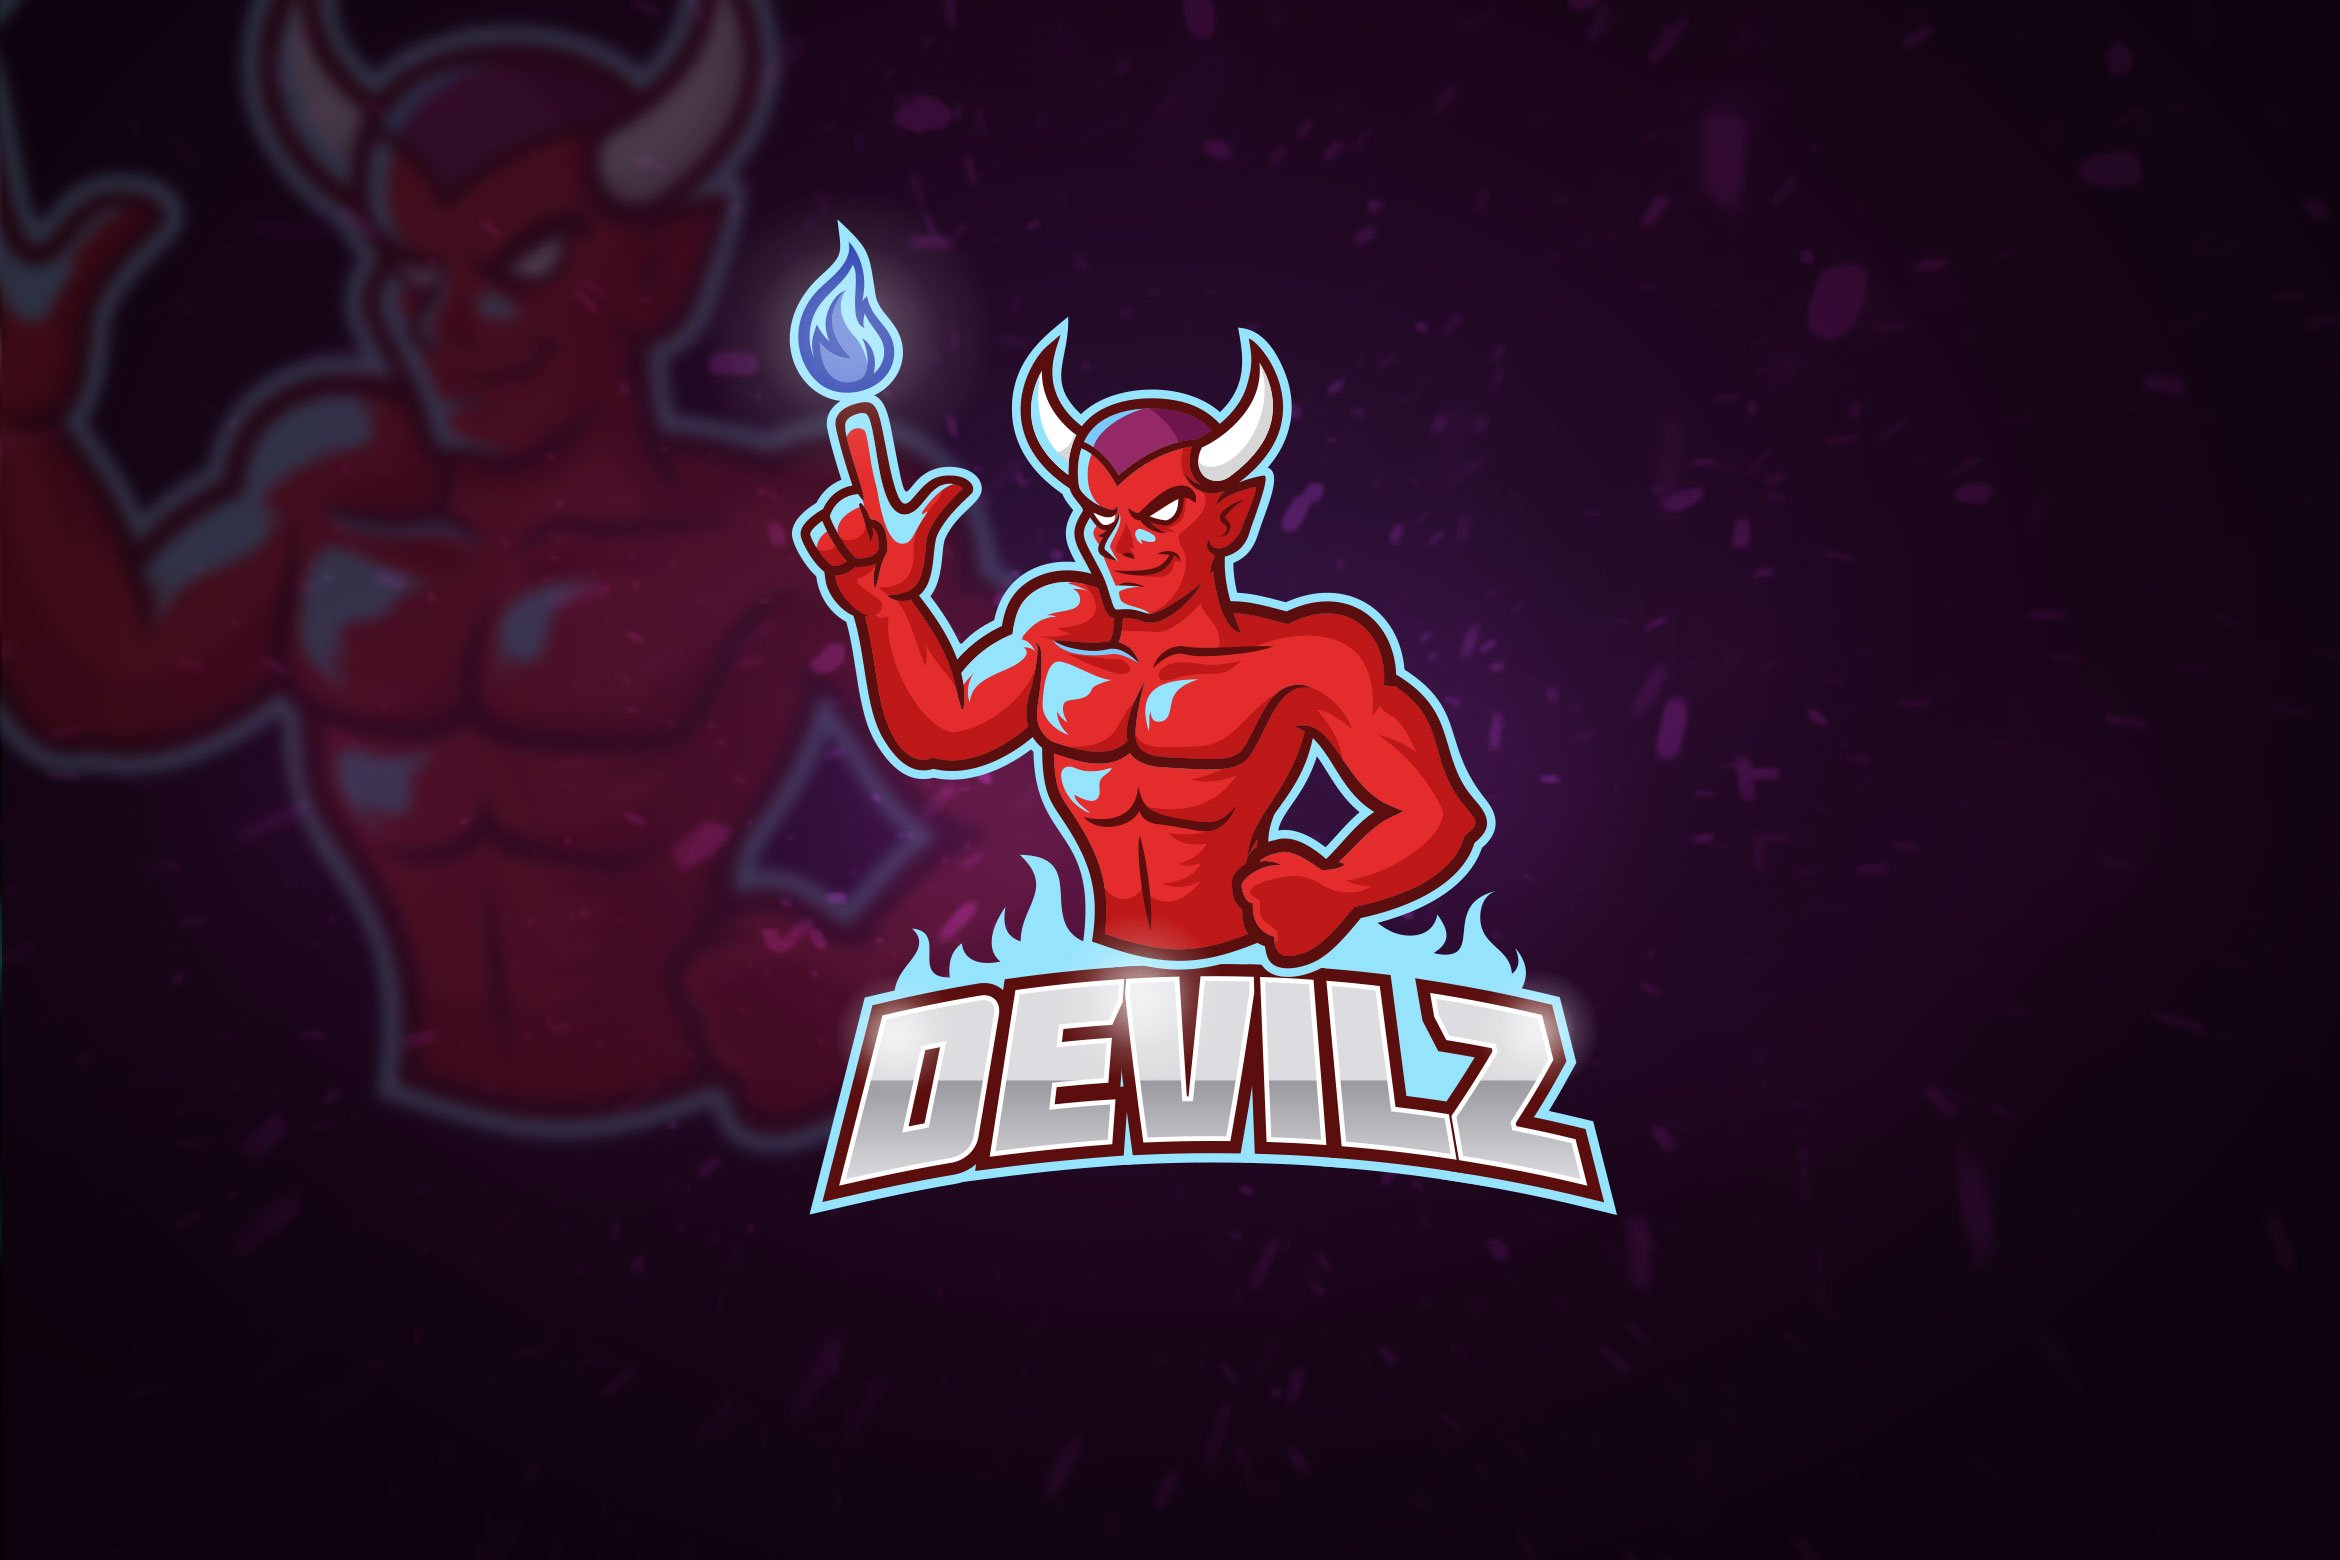 red devil mascot esport logo creative illustrator templates creative market red devil mascot esport logo